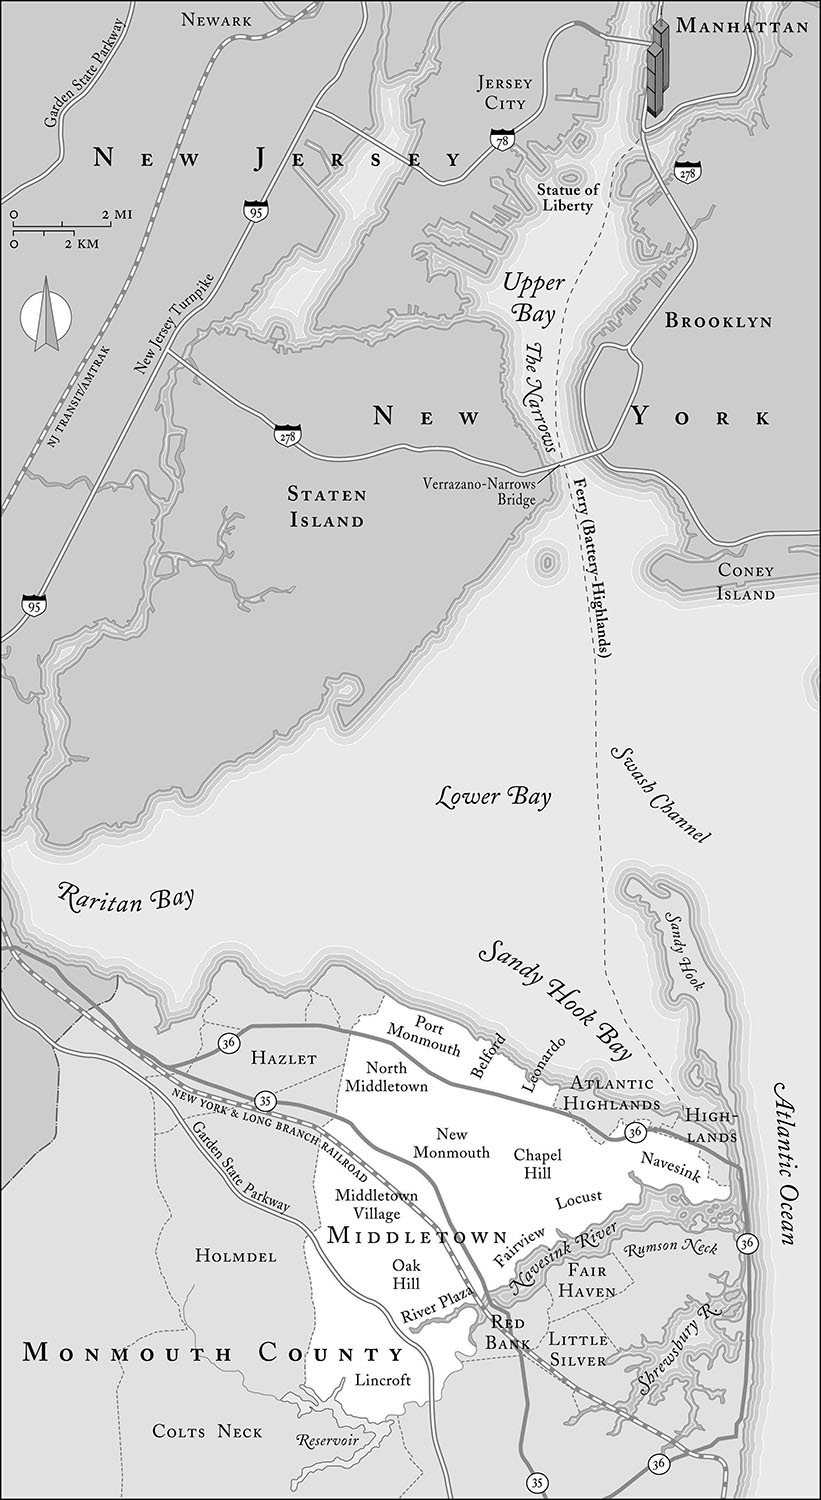 From   Middletown, America: One Town's Passage from Trauma to Hope,  by Gail Sheehy  (Random House, 2003).  Map copyright © David Lindroth Inc.  Sheehy explores the effects of 9/11 on a New Jersey town that lost nearly fifty residents to the terrorist attack..